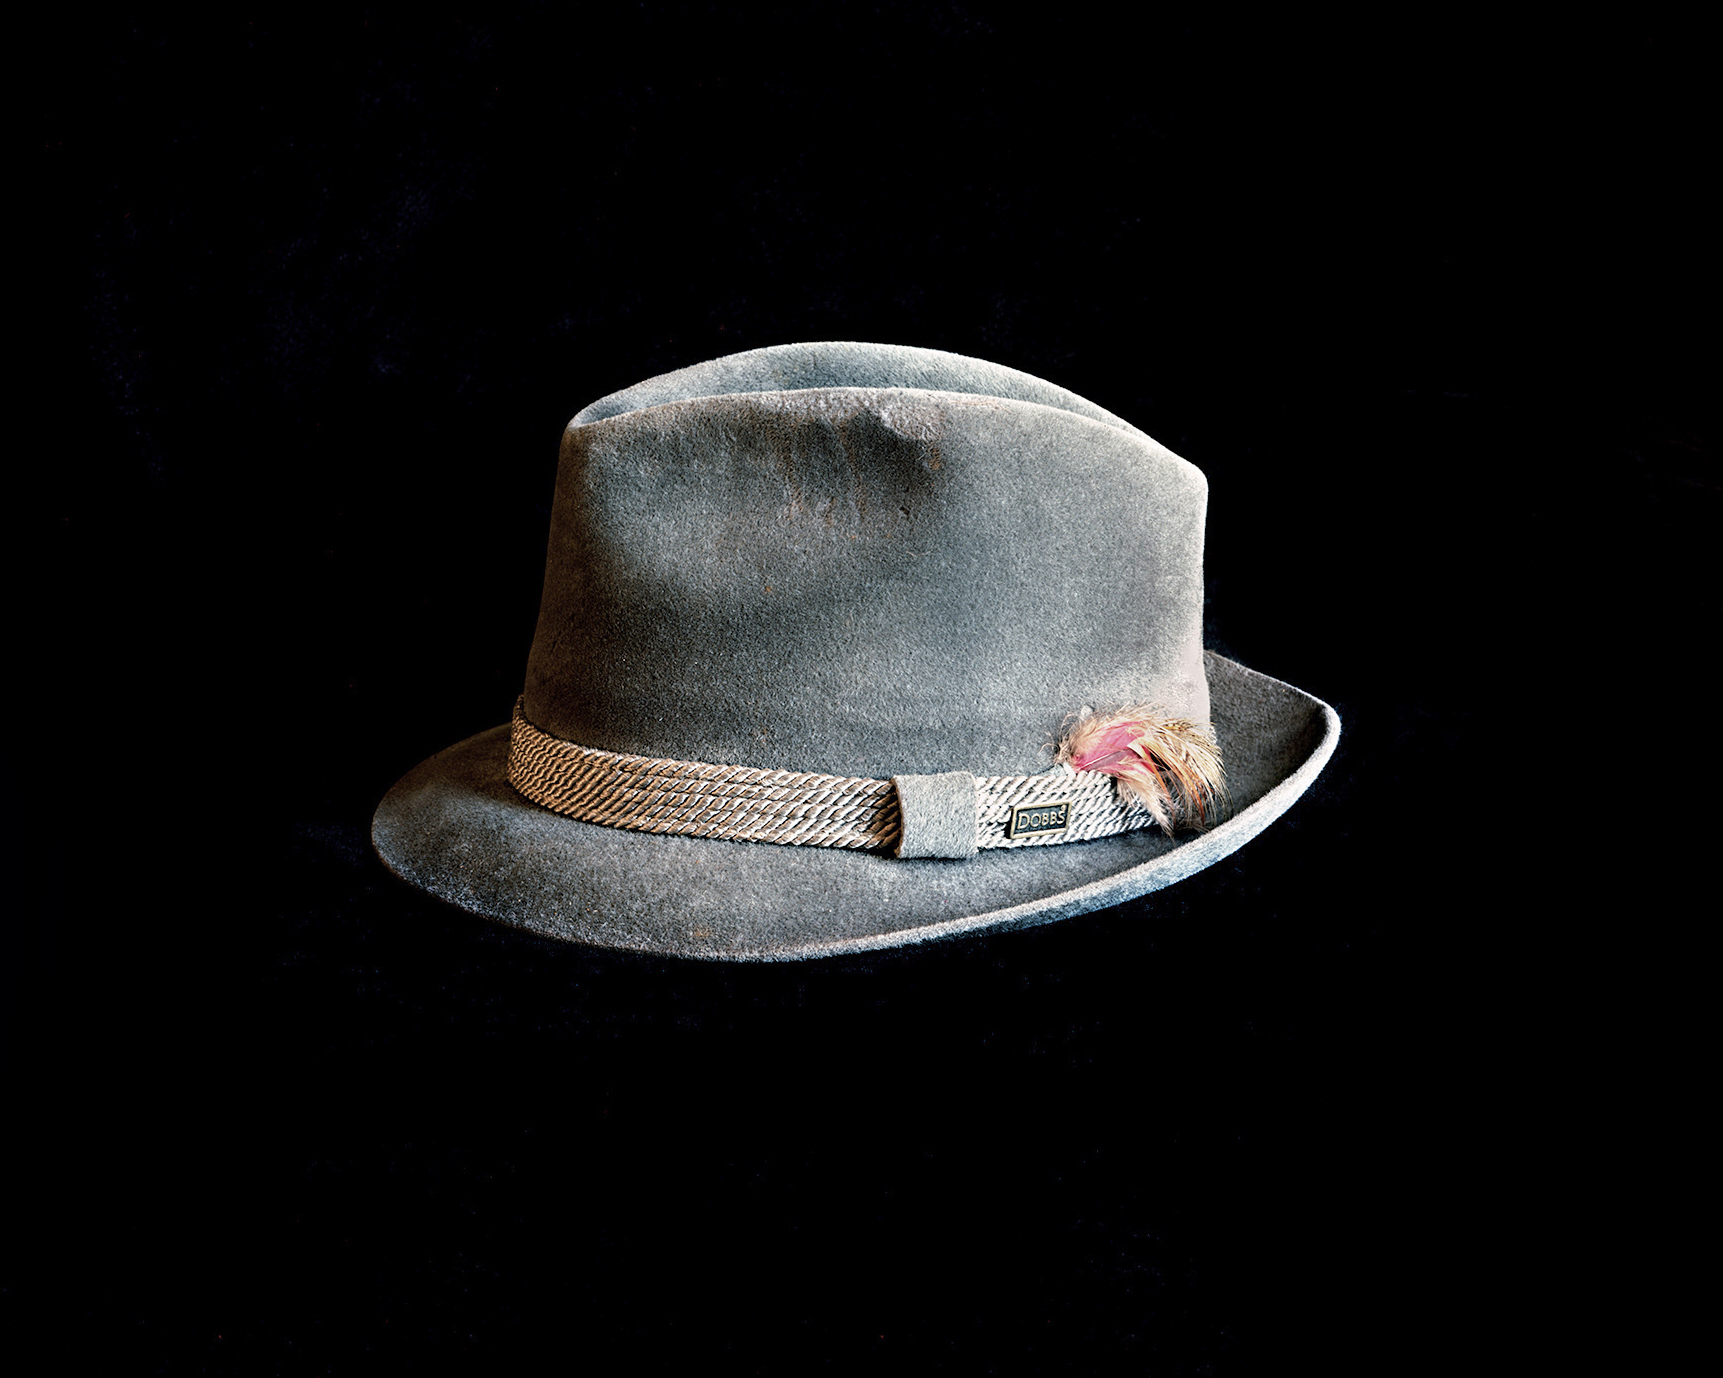 TRACES, MY FATHER'S HAT WITH FINGERPRINTS